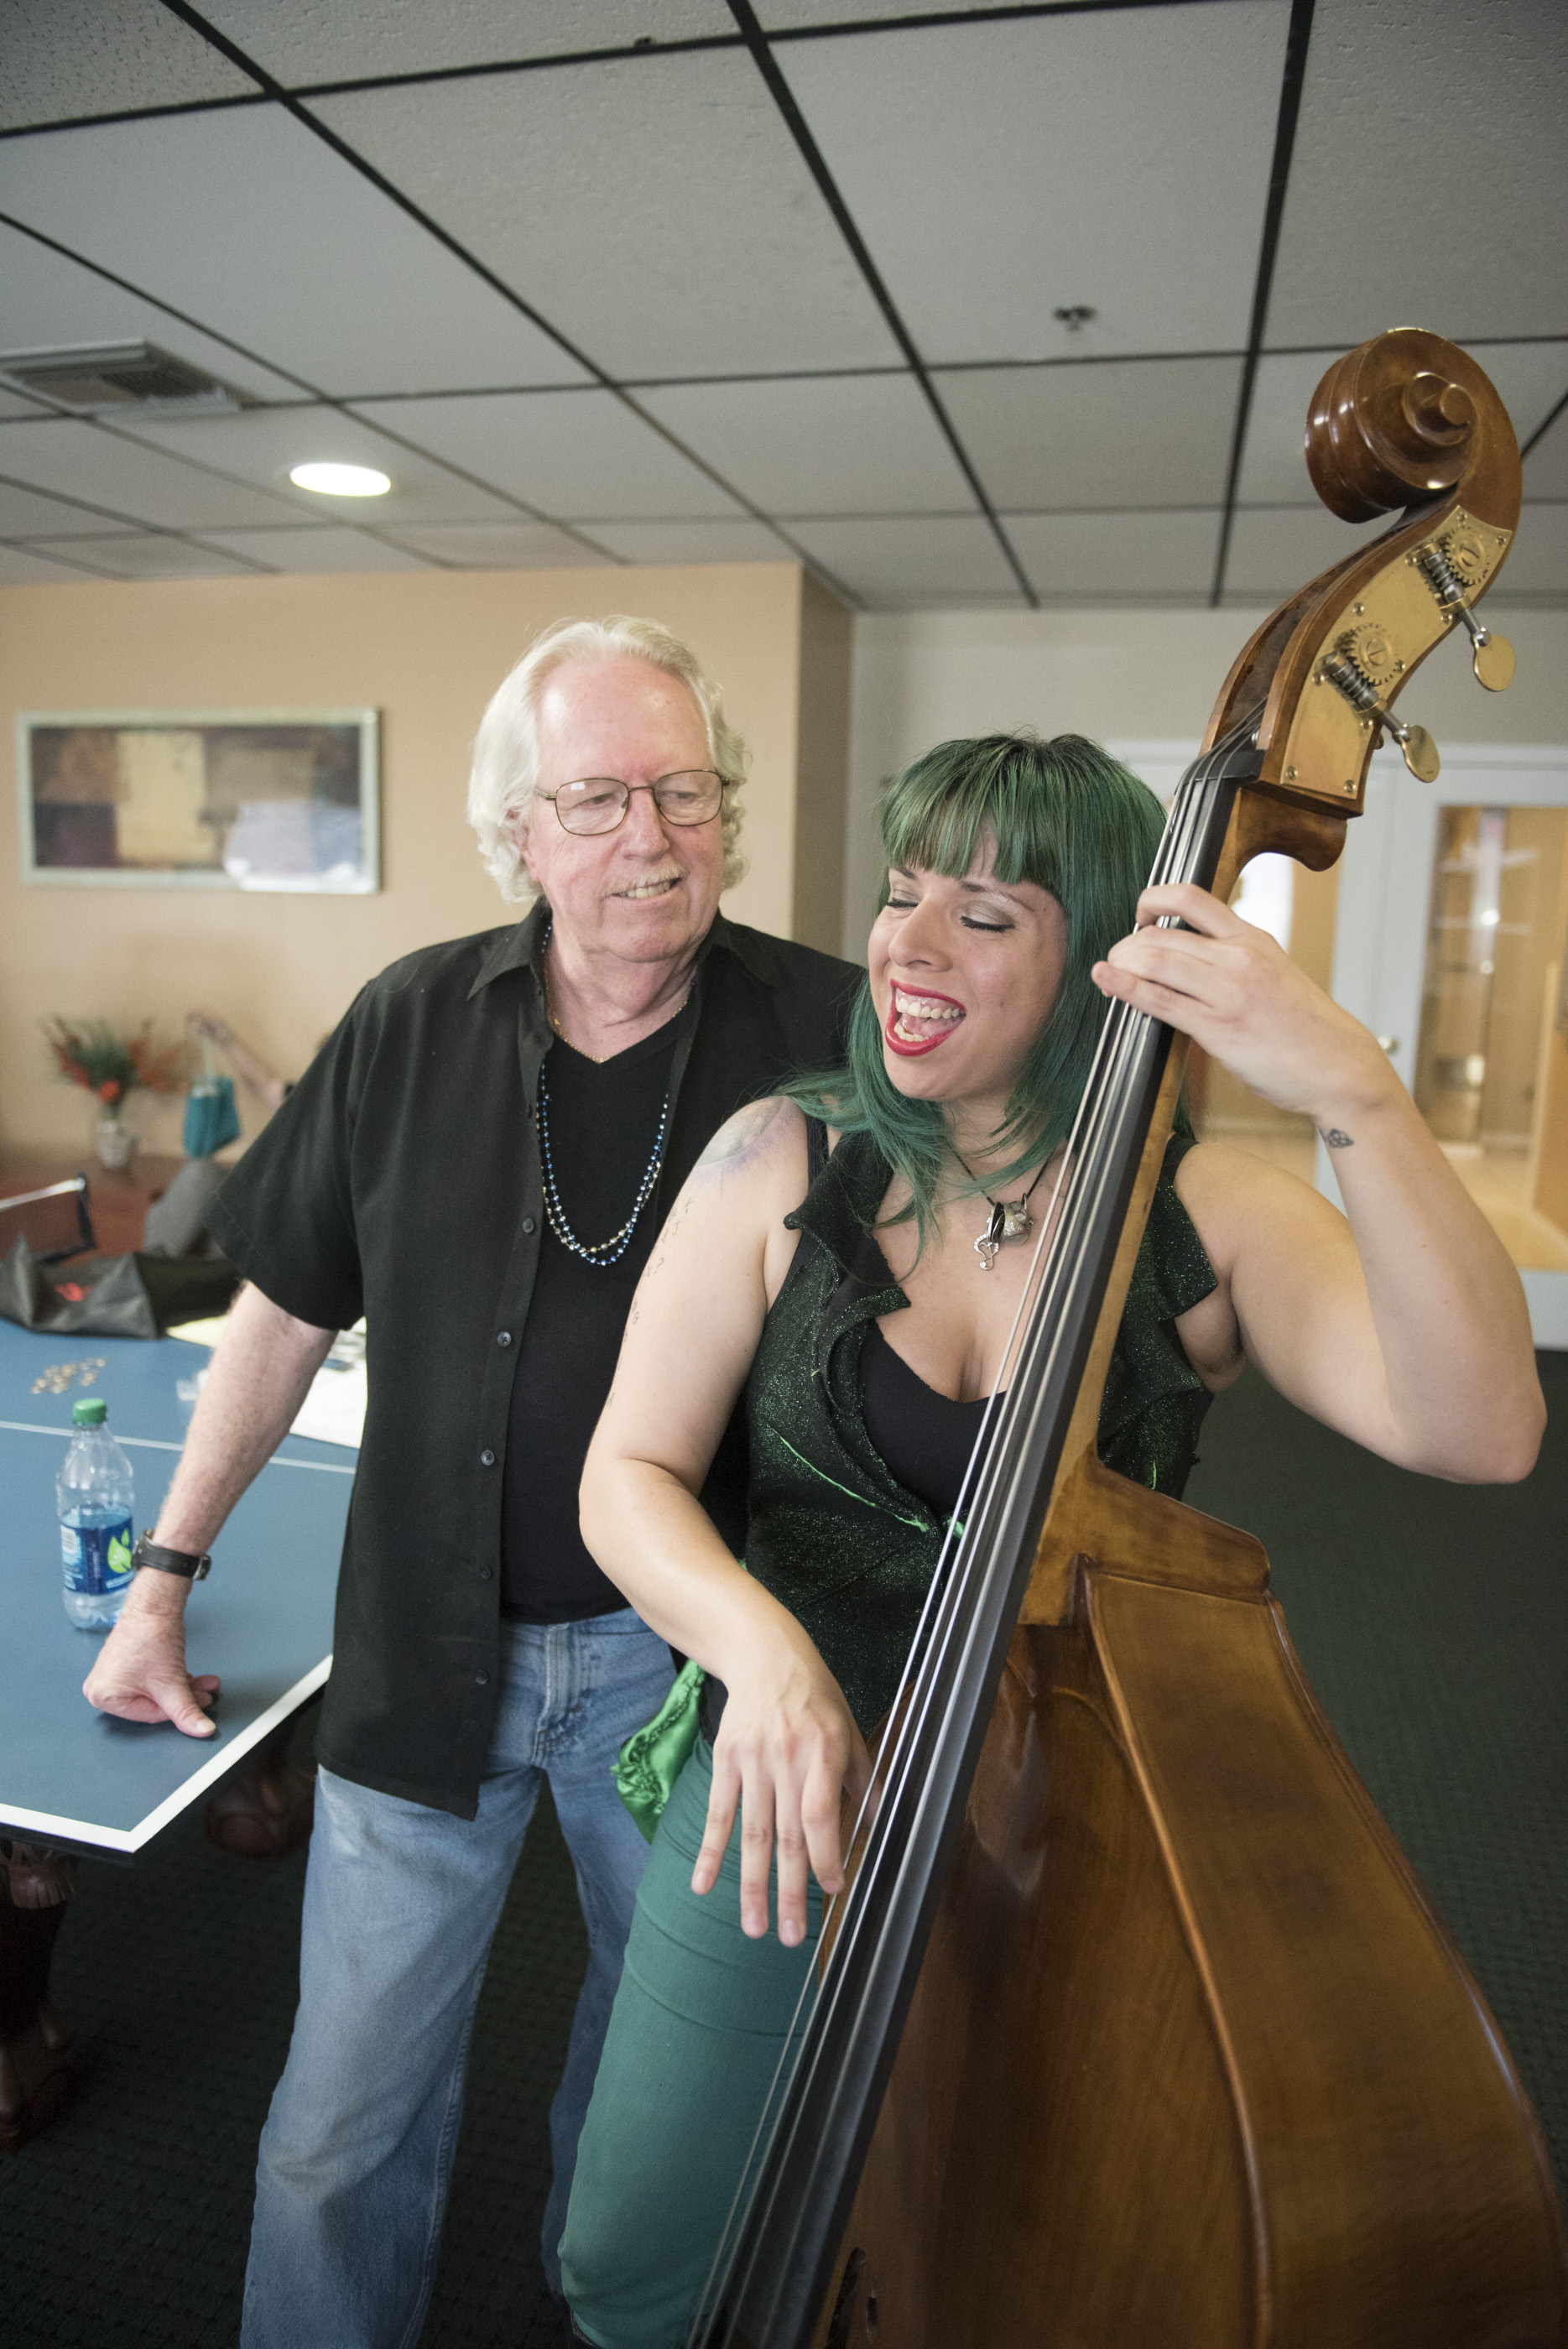 """From left, Lee Mallory and Jill """"Mizz Absurd"""" Avilez rehearse for their upcoming show entitled """"Funky Love"""" in the community room at Mallory's Las Vegas residence, Sunday, Aug. 2, 2015. Funky Love will debut at Double Down Saloon on Saturday August 8. (Jason Ogulnik/Las Vegas Review-Journal)"""